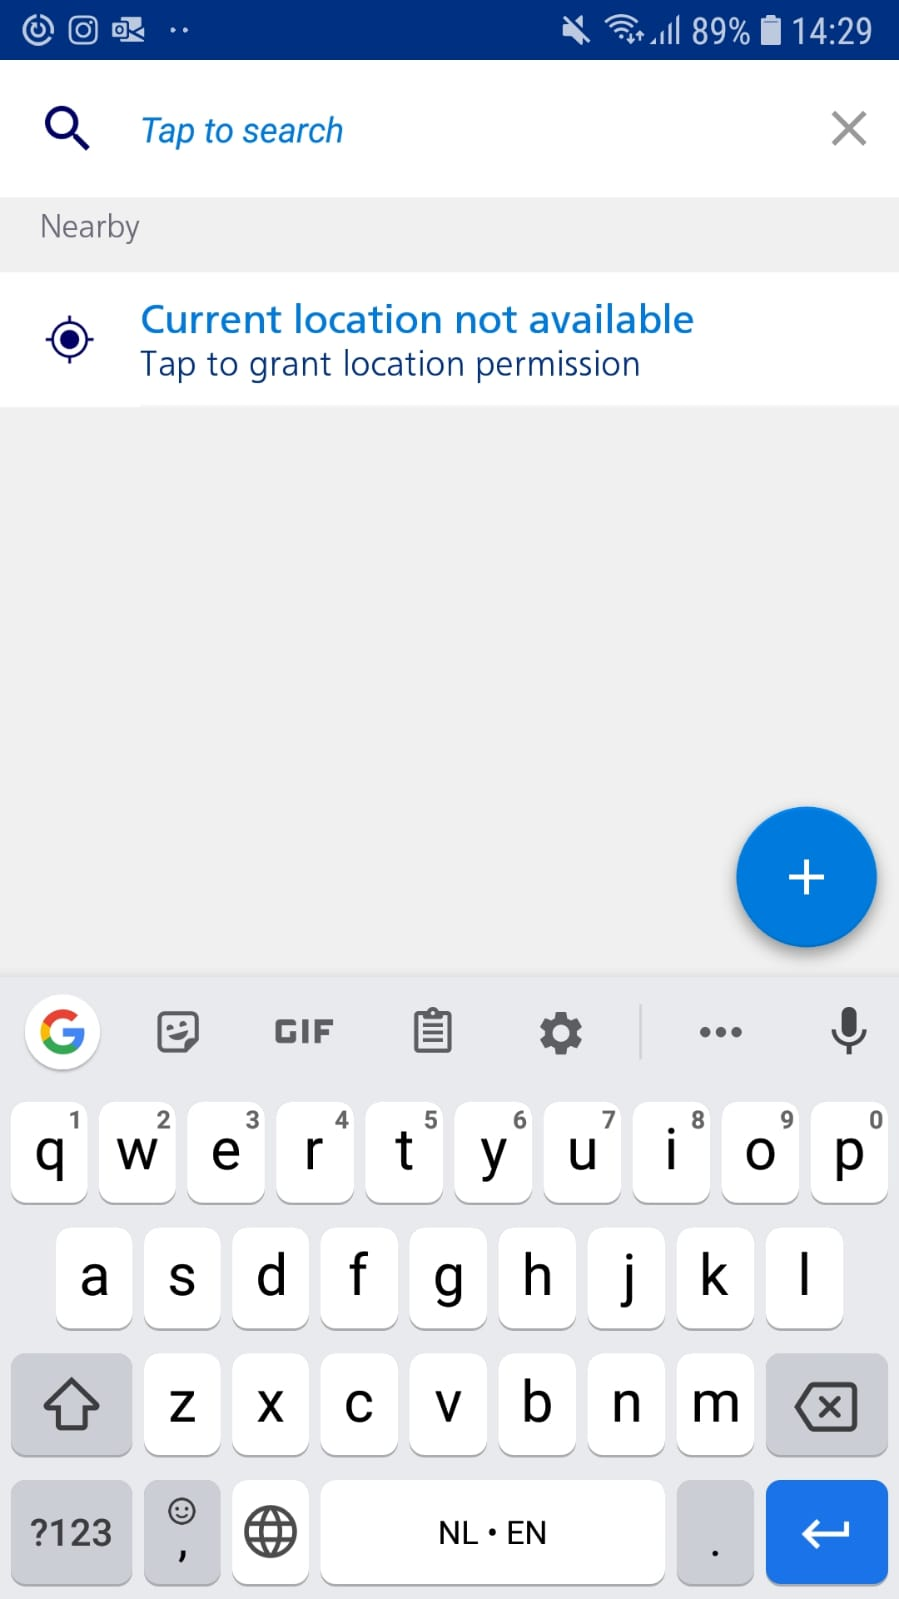 Example how to give location permission in NS app.